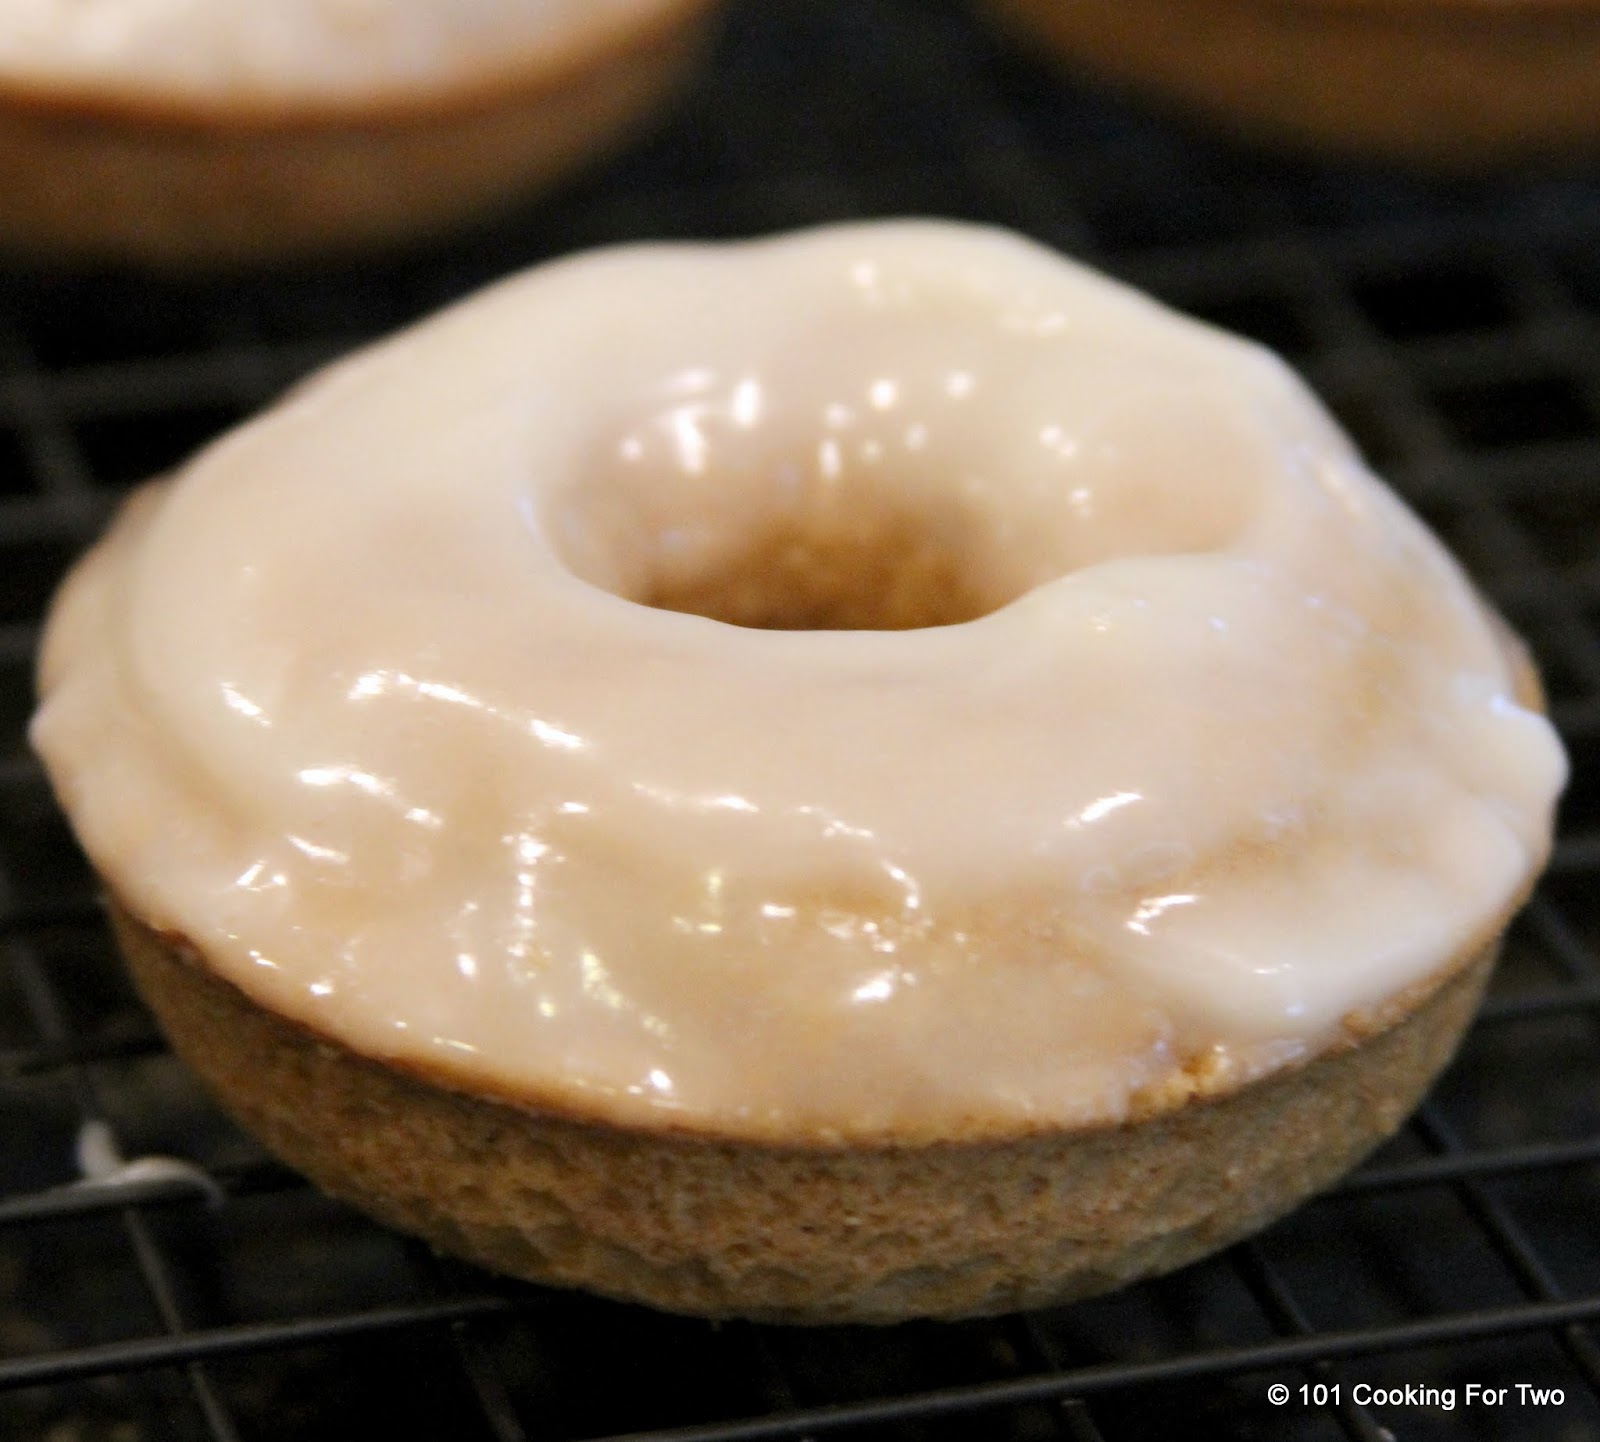 Cinnamon Roll Doughnut with Cream Cheese Frosting